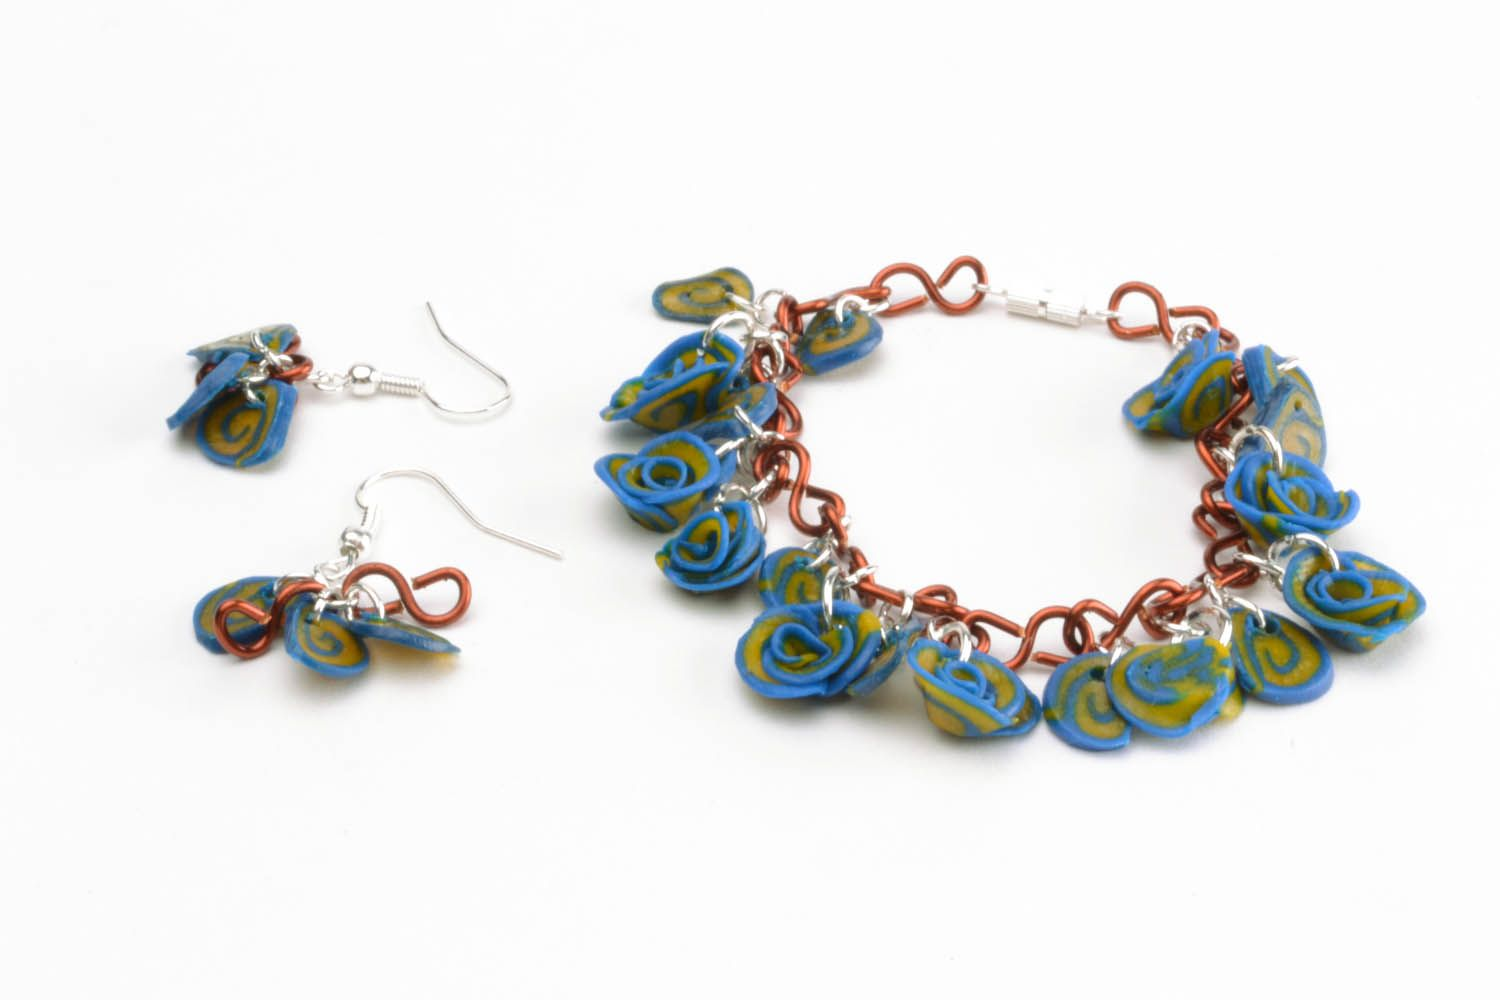 Polymer clay earrings and bracelet photo 2